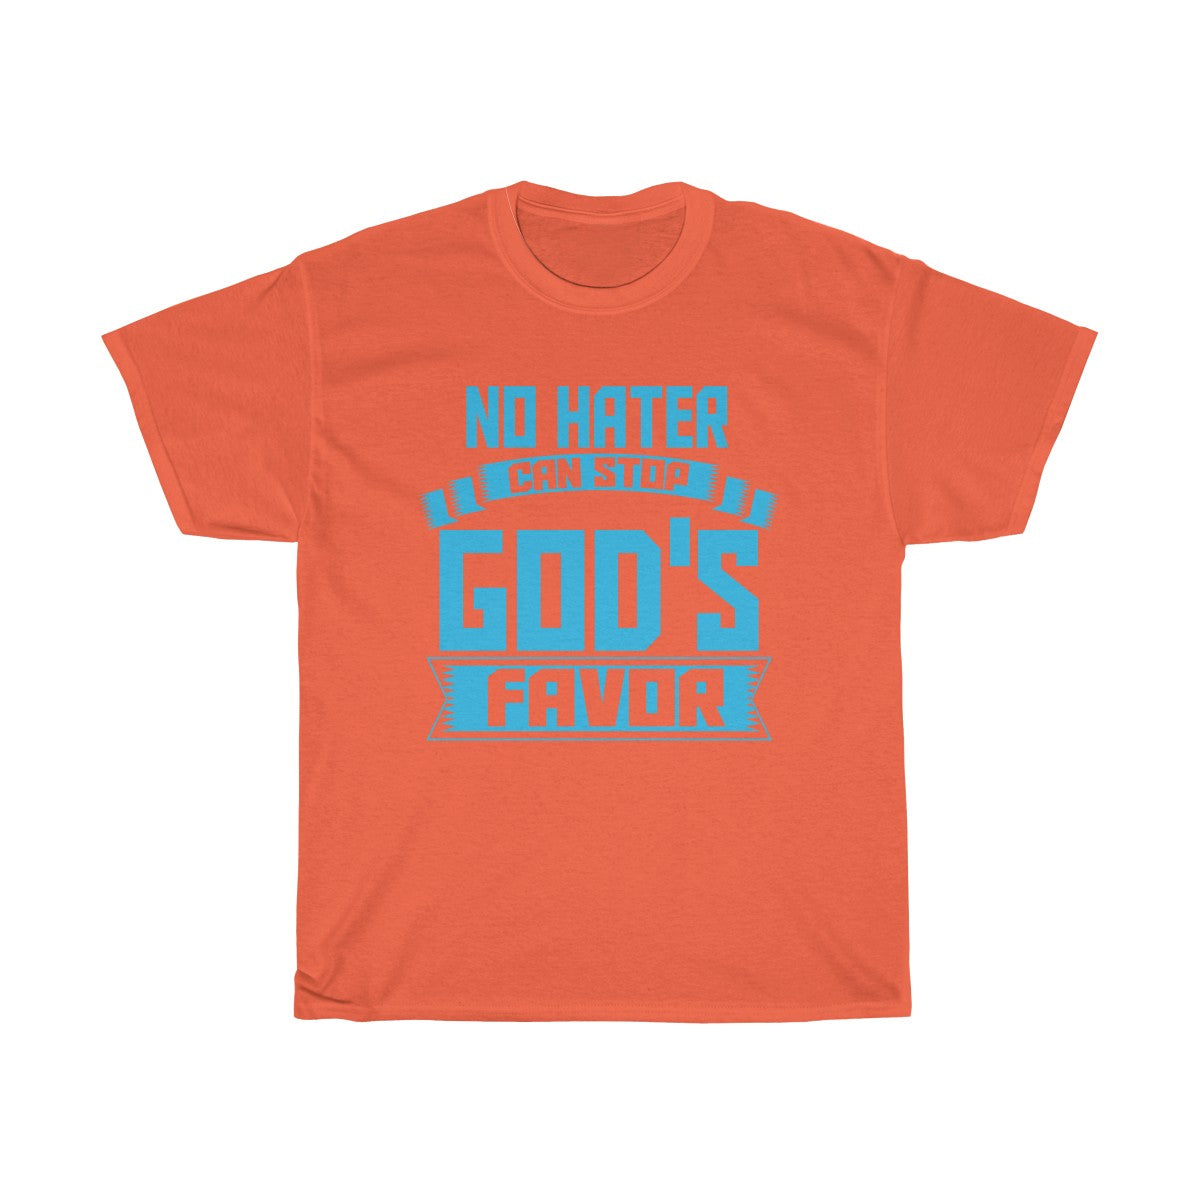 No Hater God's Favor T-Shirt